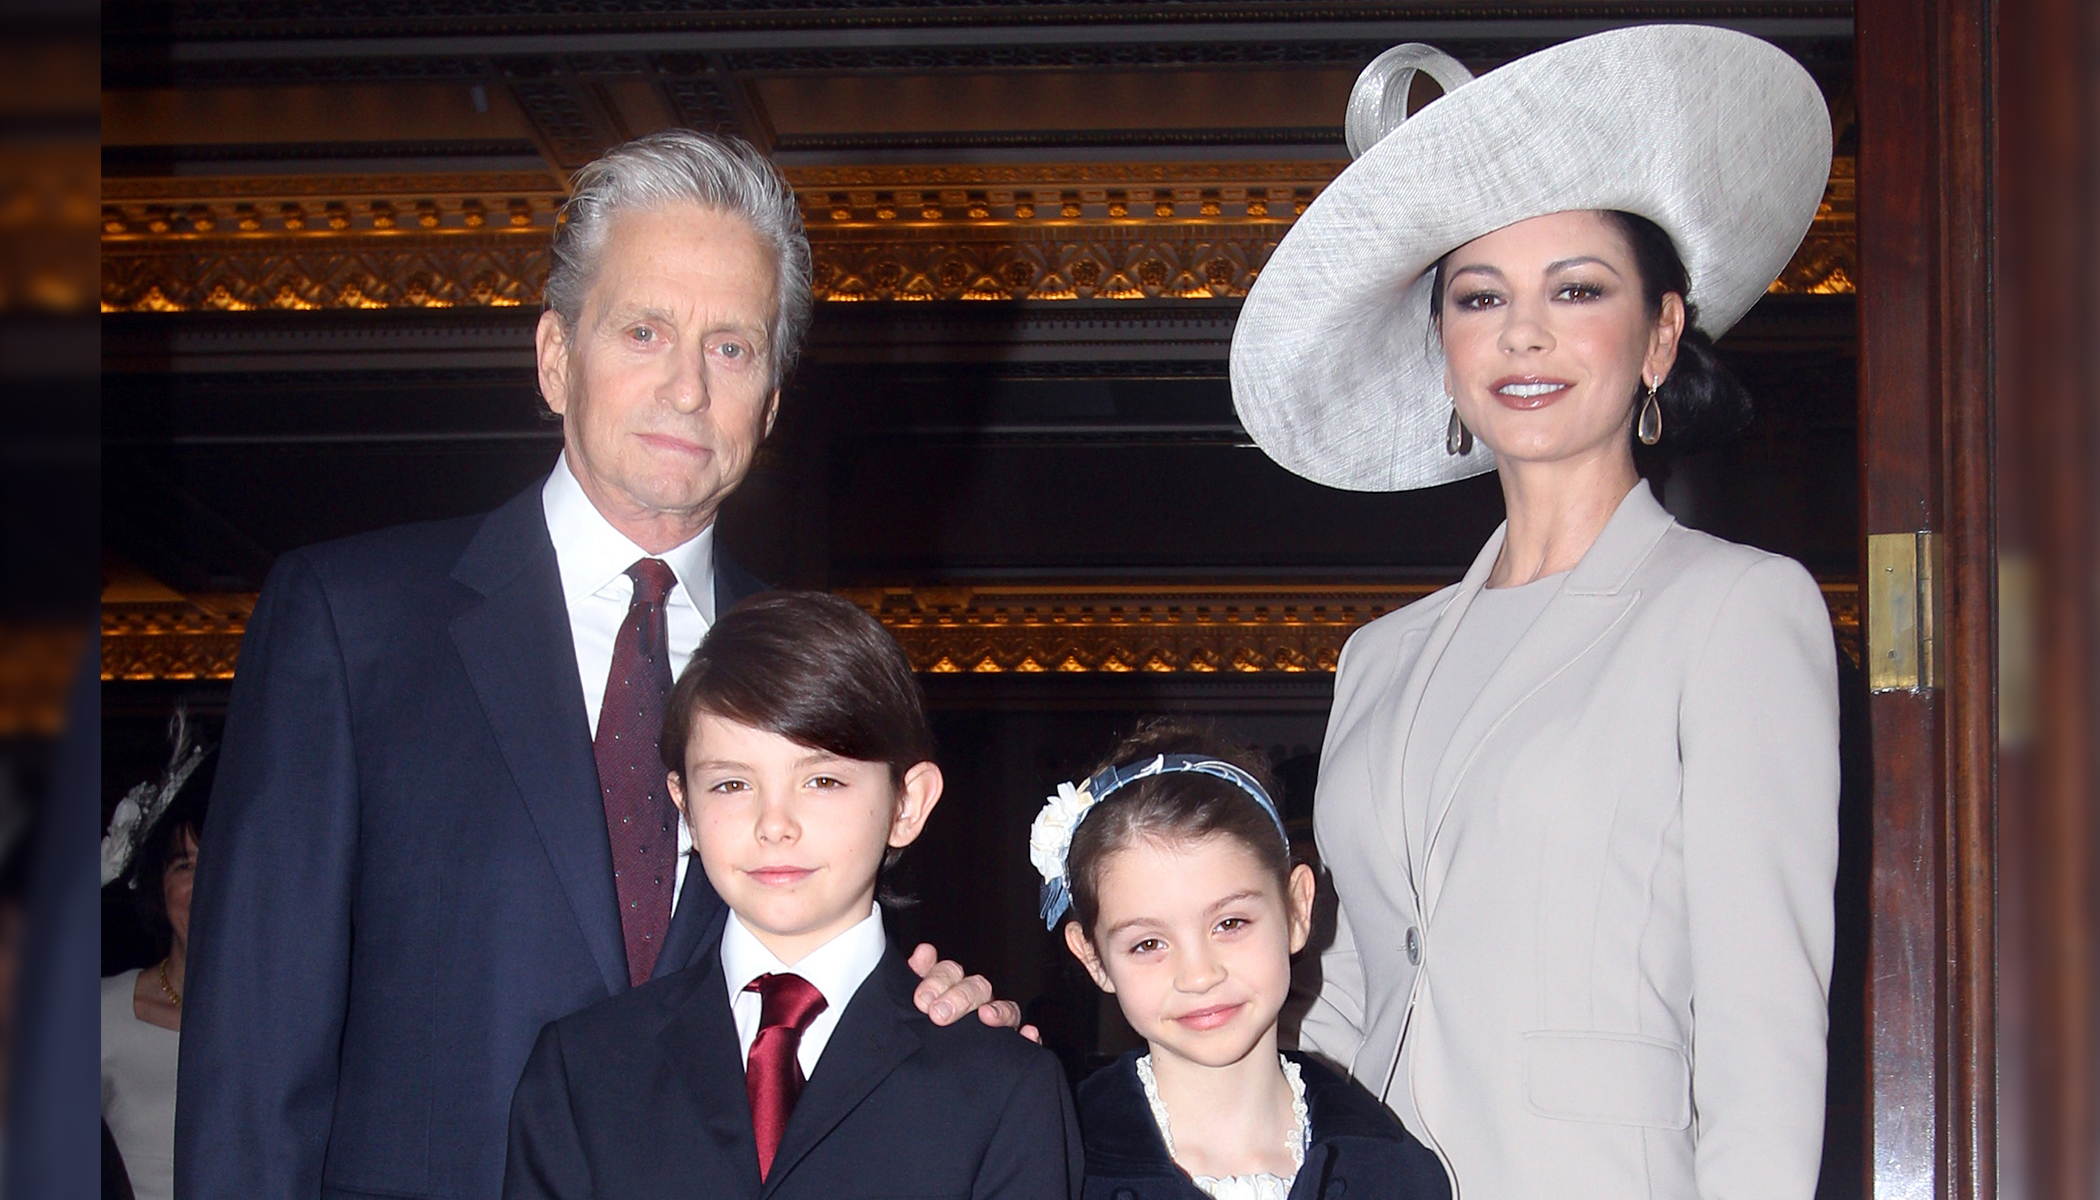 Catherine Zeta-Jones's Daughter Carys Is All Grown Up and Looks Like Her Iconic Mom